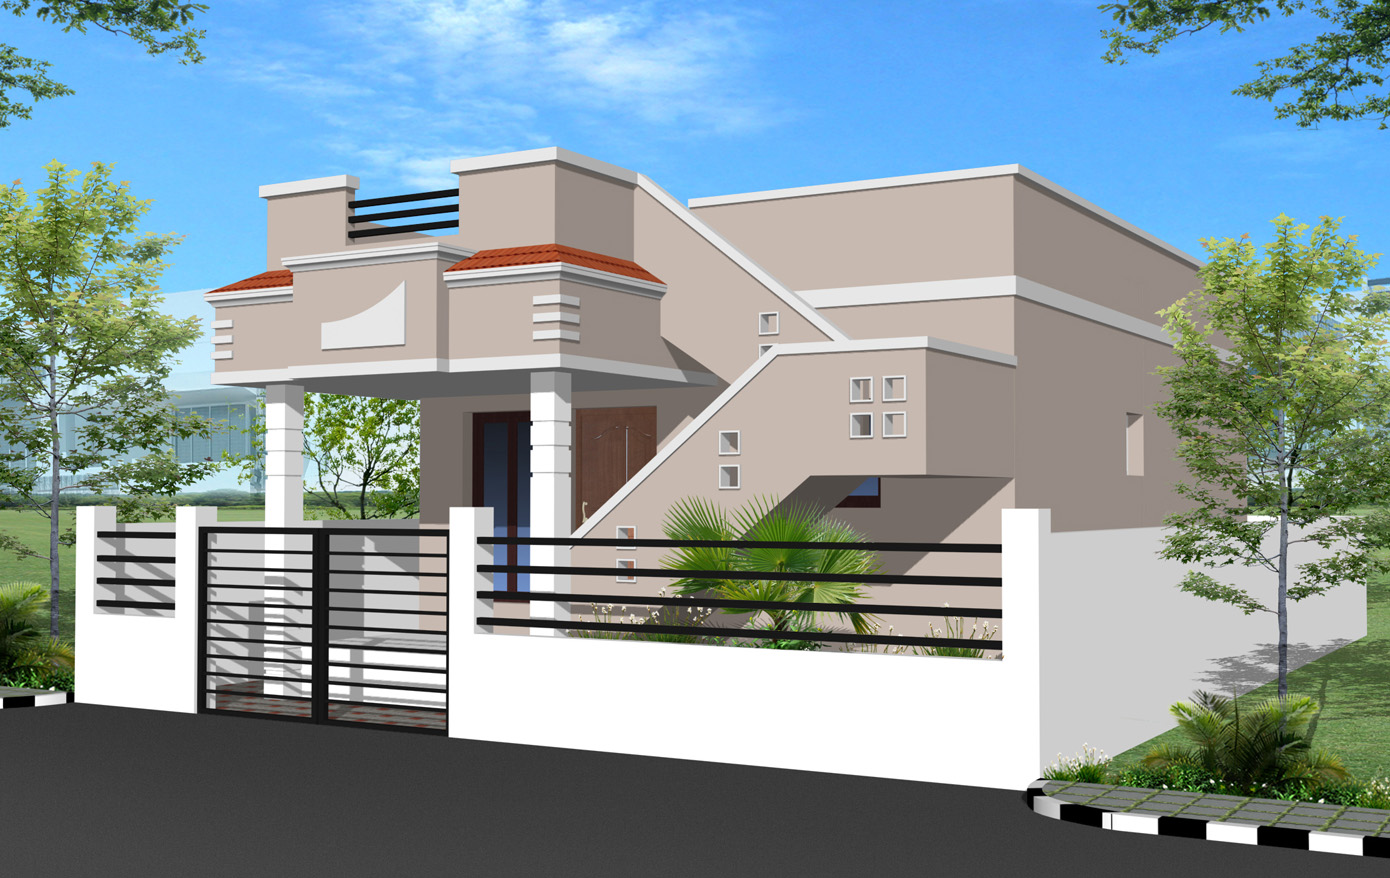 House Compound Wall Design | 2017 - 2018 Best Cars Reviews